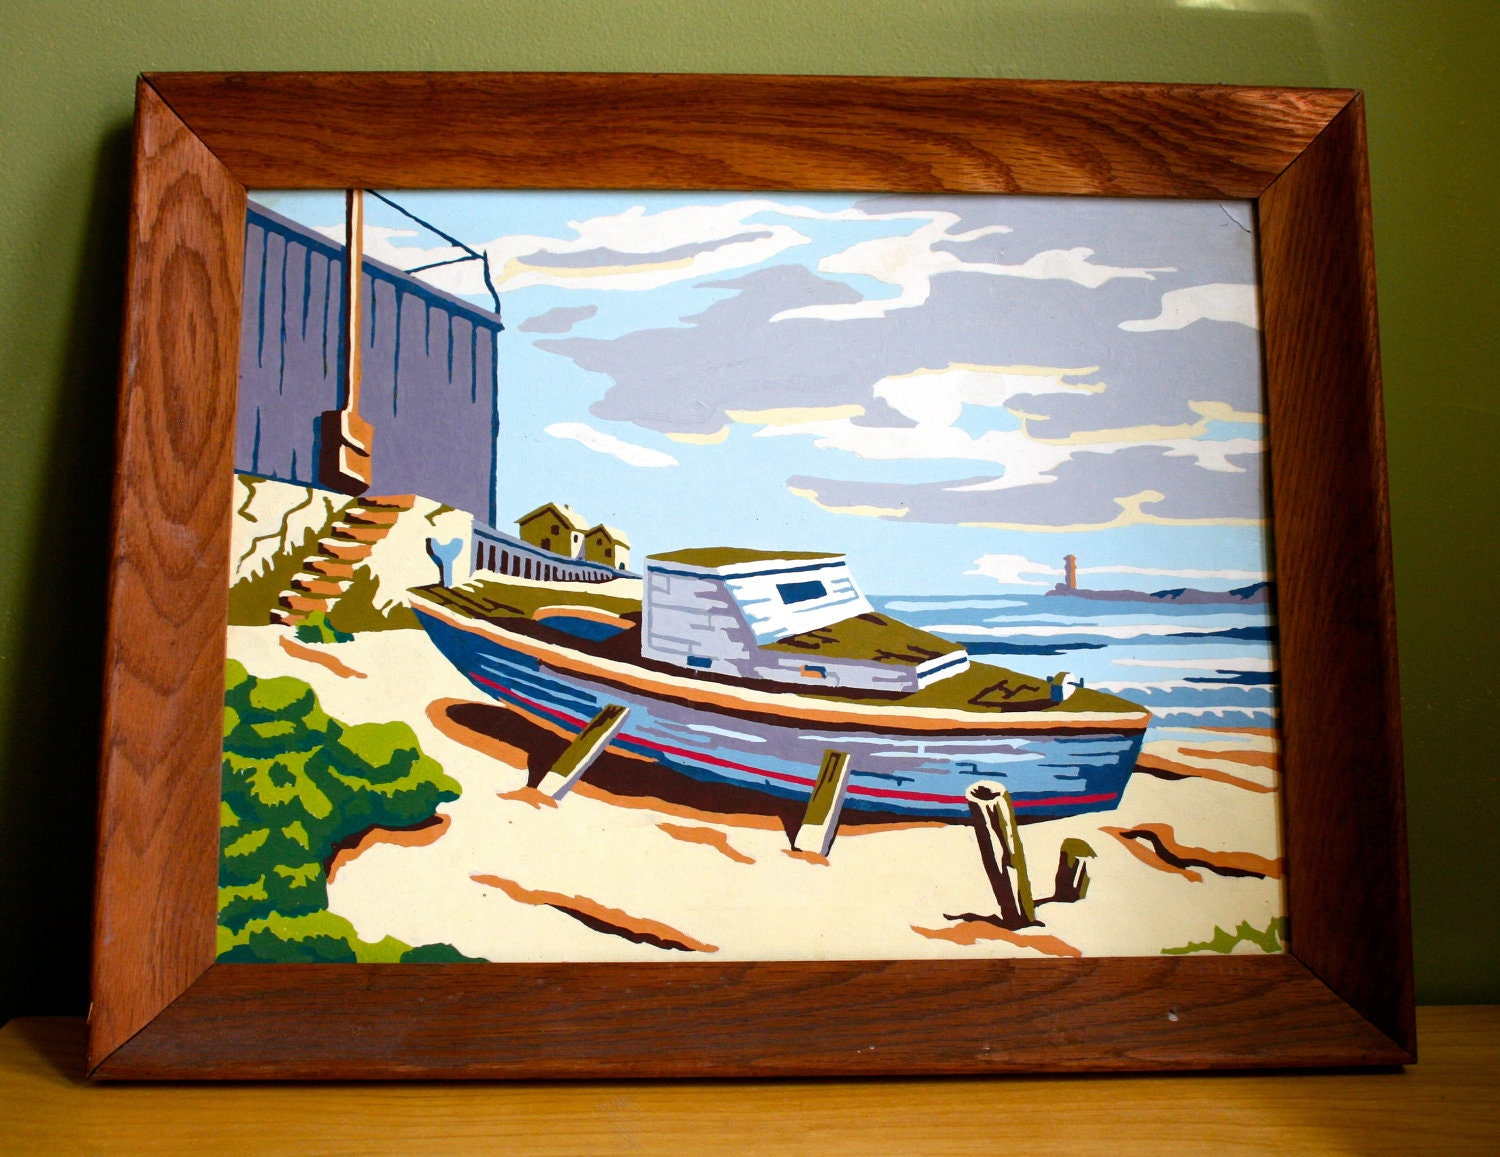 Sailboat Paint by Number in Chestnut Wooden Frame- Vibrant 1970's